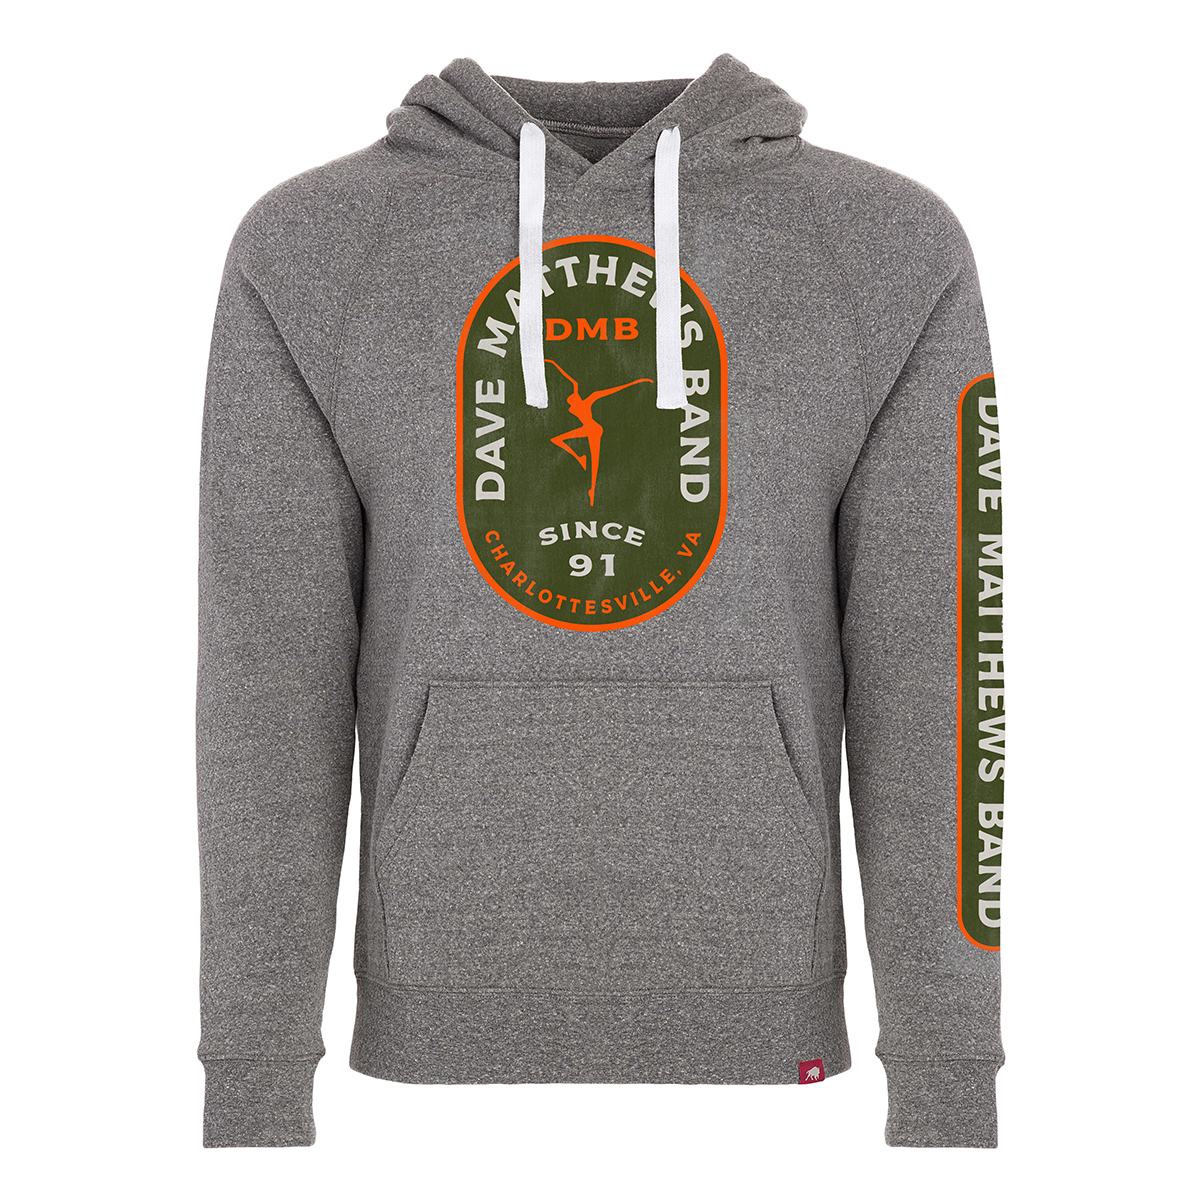 Since 91 Badge Pullover Hoody